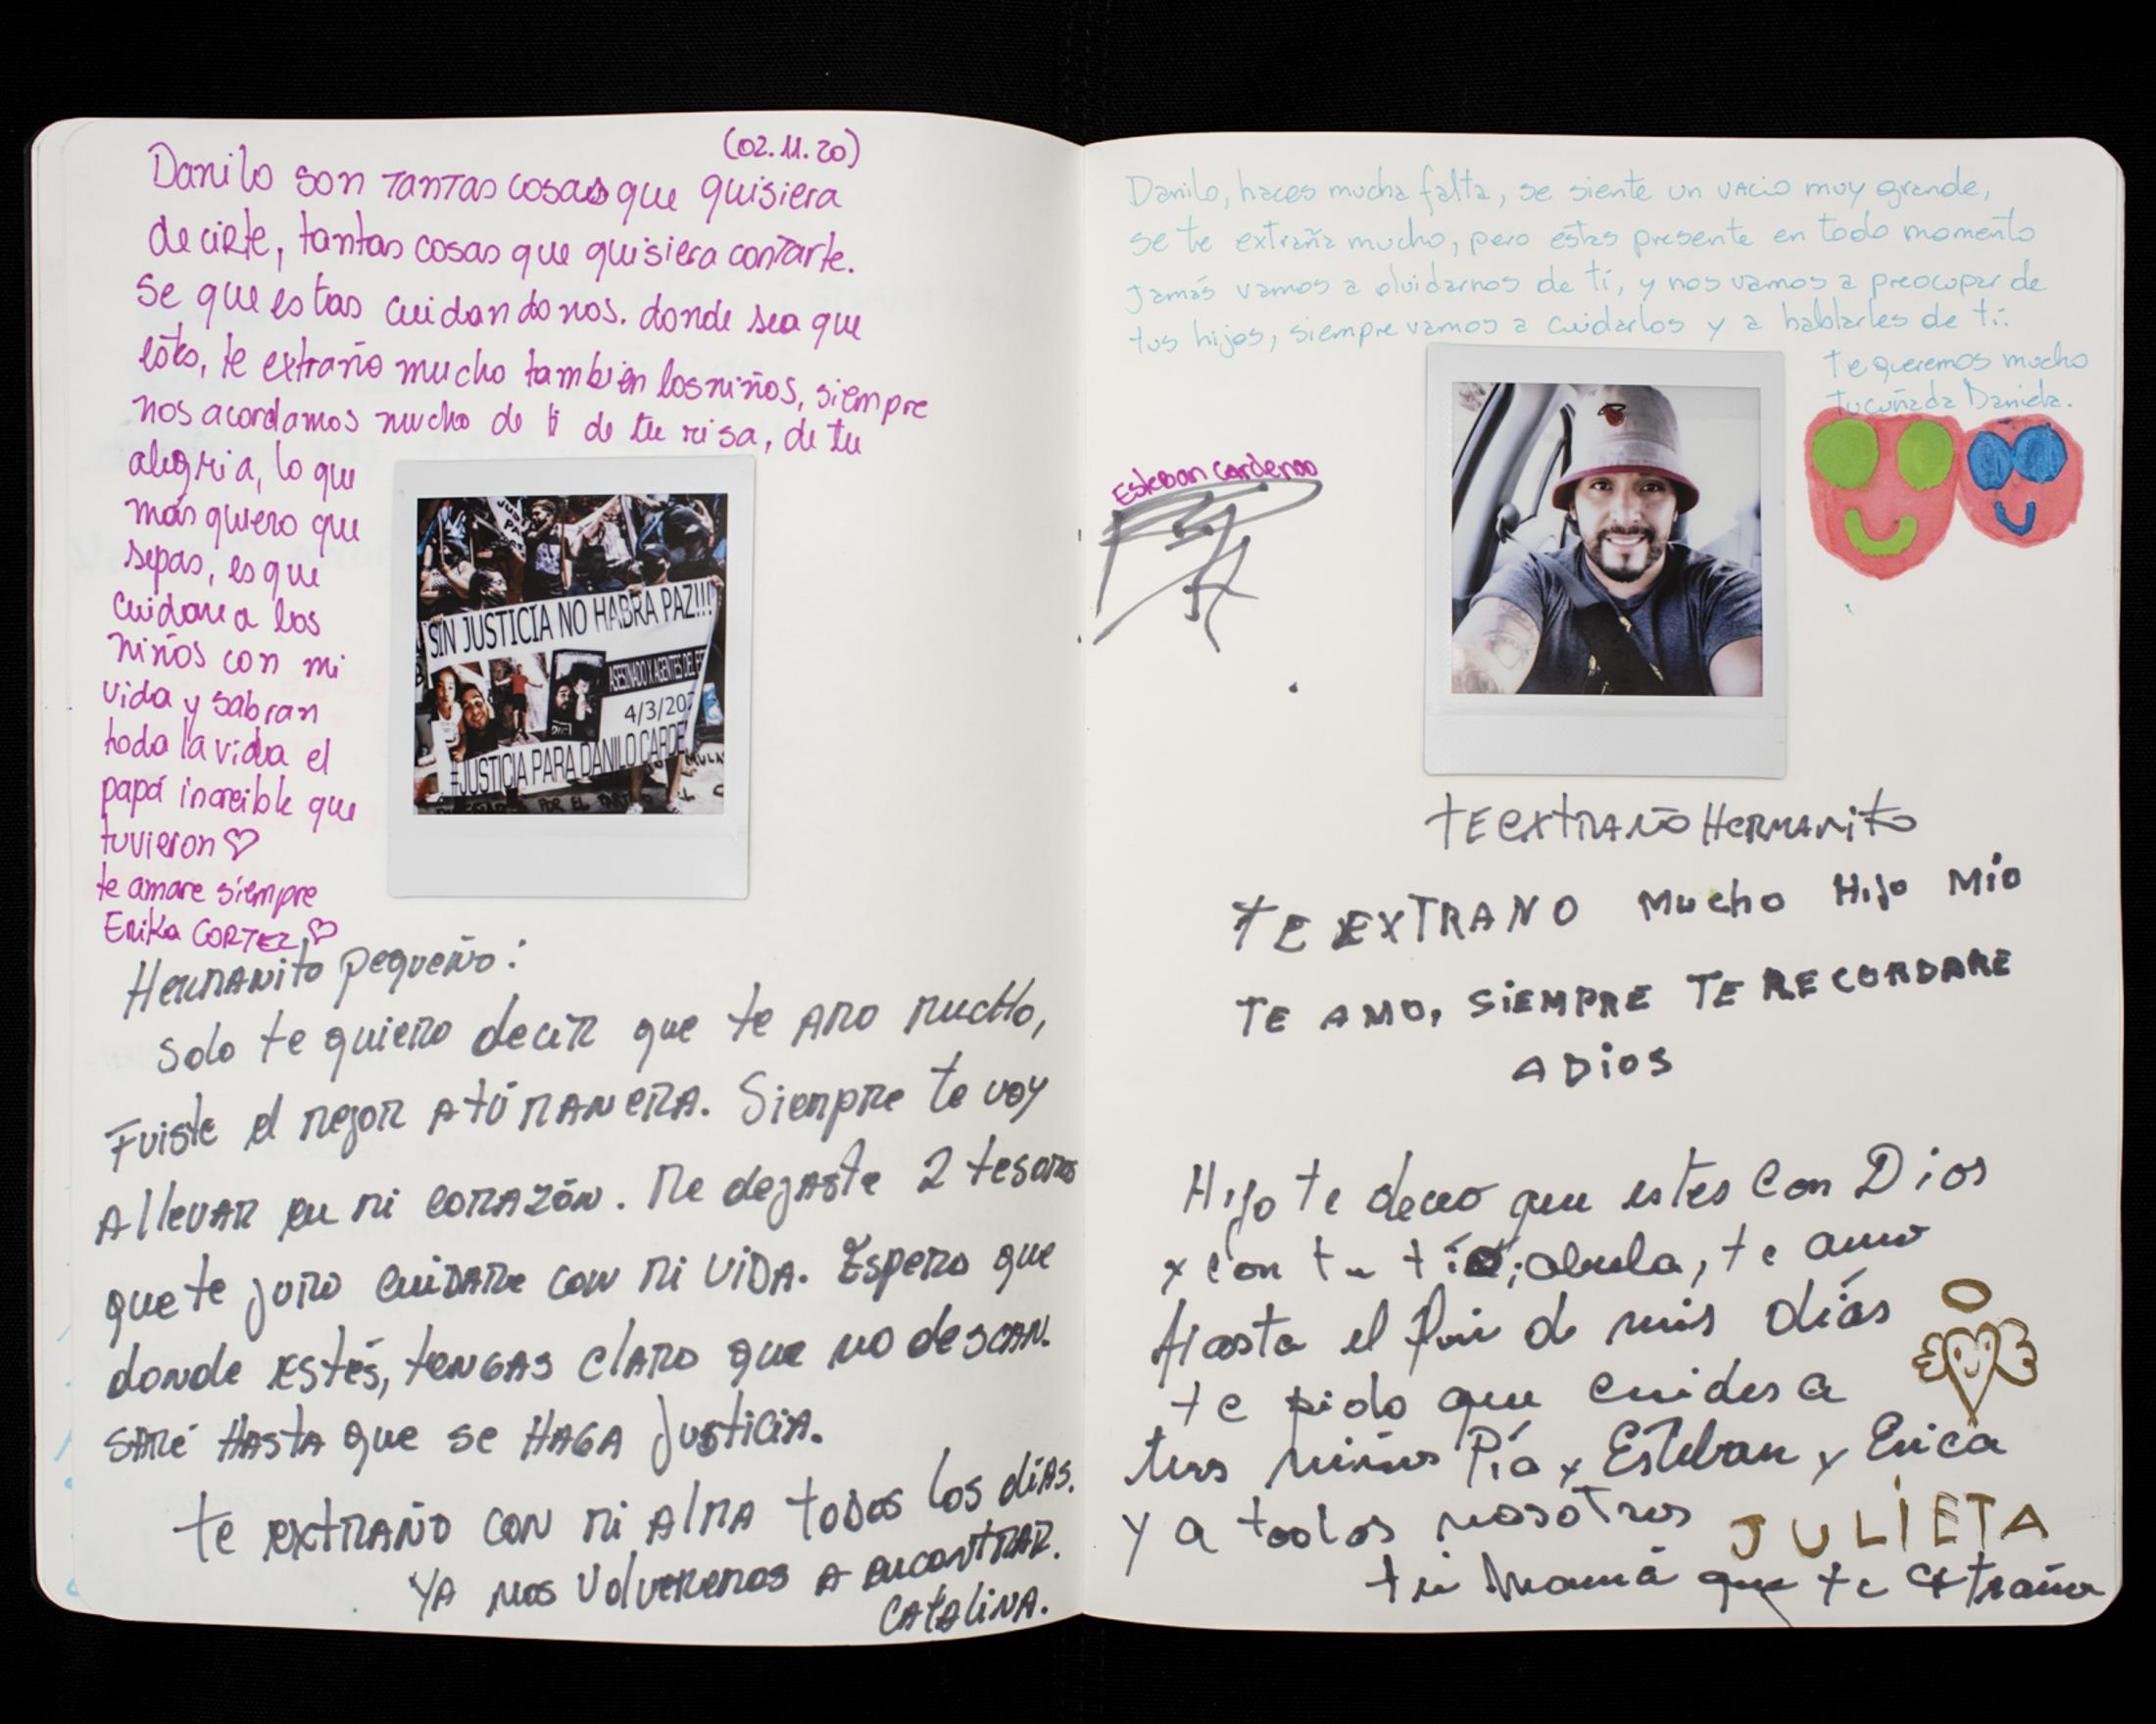 A family letter to the memory of Danilo Cárdenas, and his site of death. During the first days of the social uprising, the tollbooth was vandalized several times and served as a hotspot for confrontations between protesters and the police. During the night of March 4, 2020, Danilo crashed his car into a police patrol car at the tollbooth. An ensuing argument ended with Danilo being shot and killed by the police. Later videos from witnesses show how after the crash, cops put handcuffs on Danilo, and while he was on the ground begging for his life, one fired his gun at him.